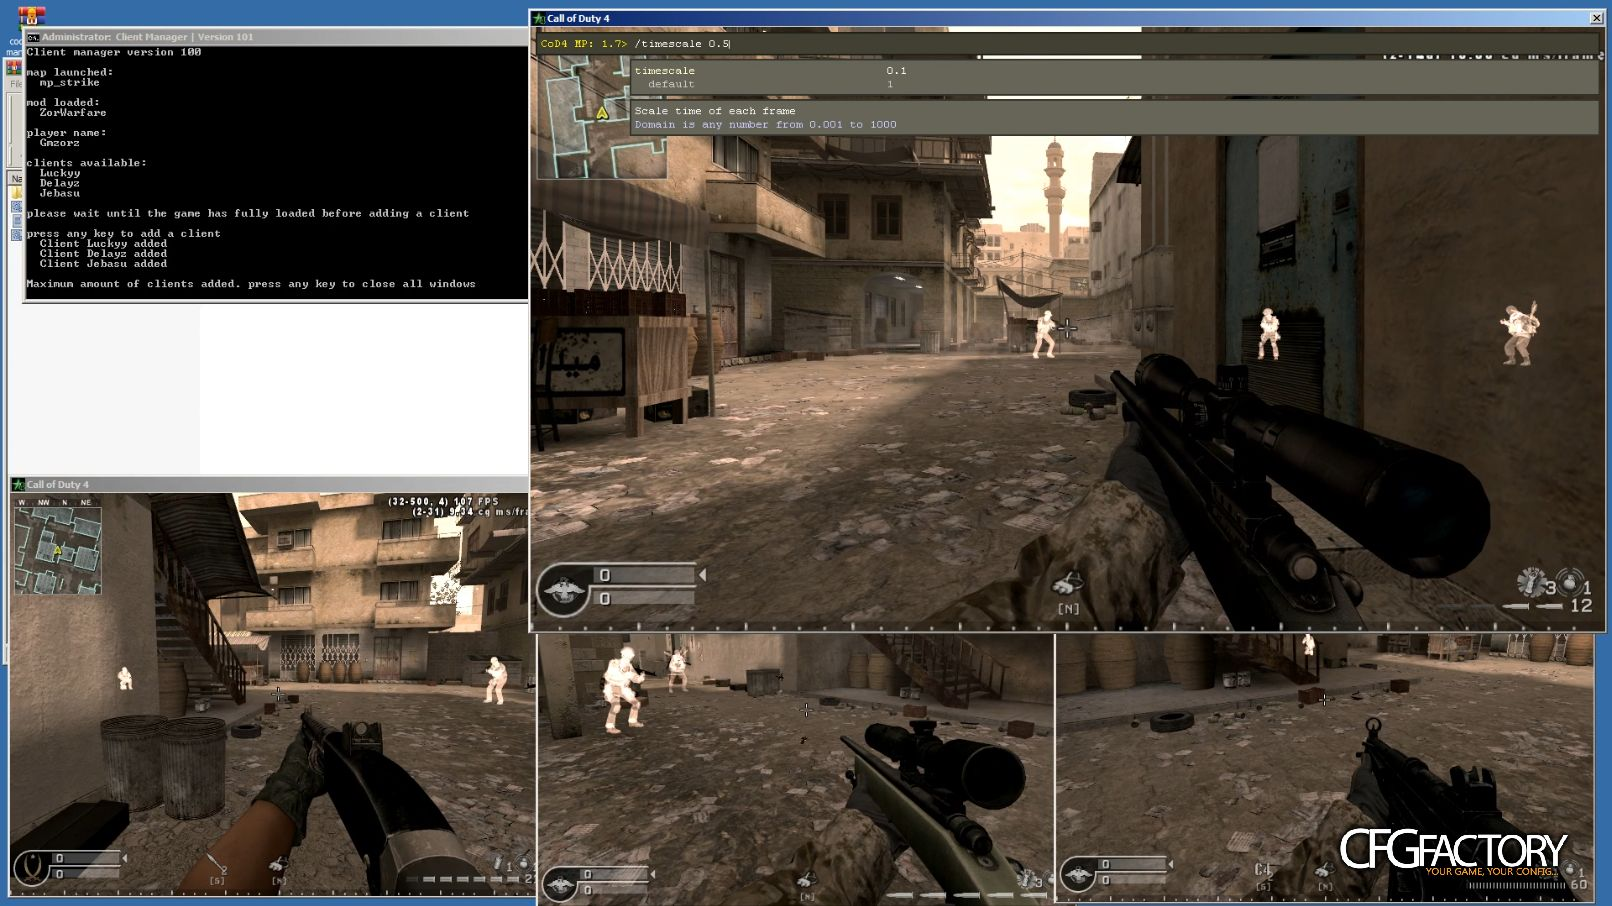 cod4, tools, client manager for cod4, gmzorz